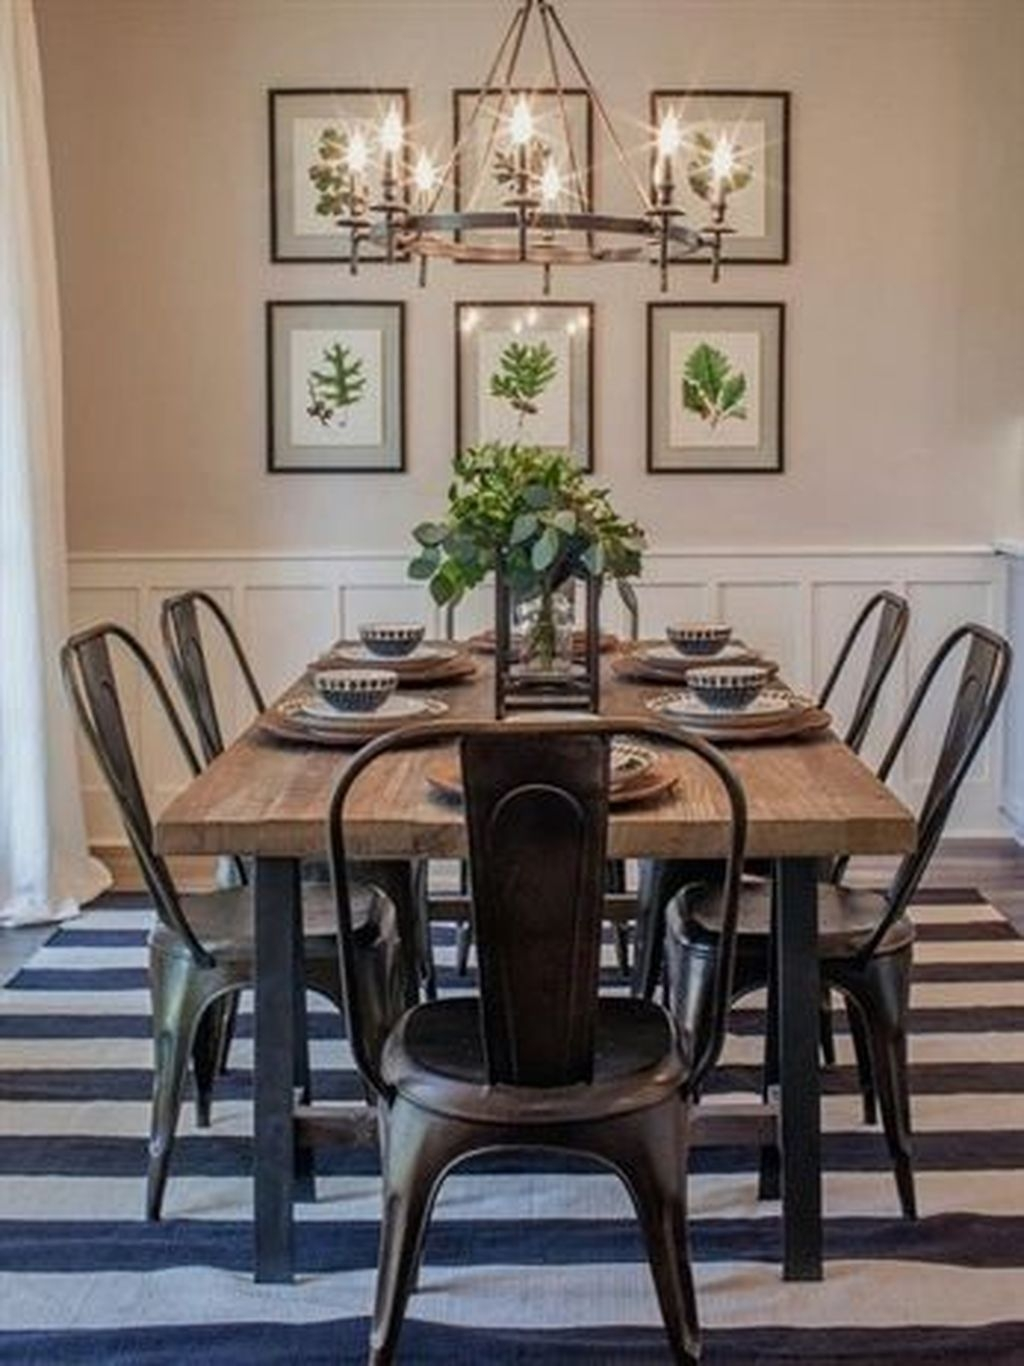 Best Minimalist Dining Room Design Ideas For Dinner With Your Family28